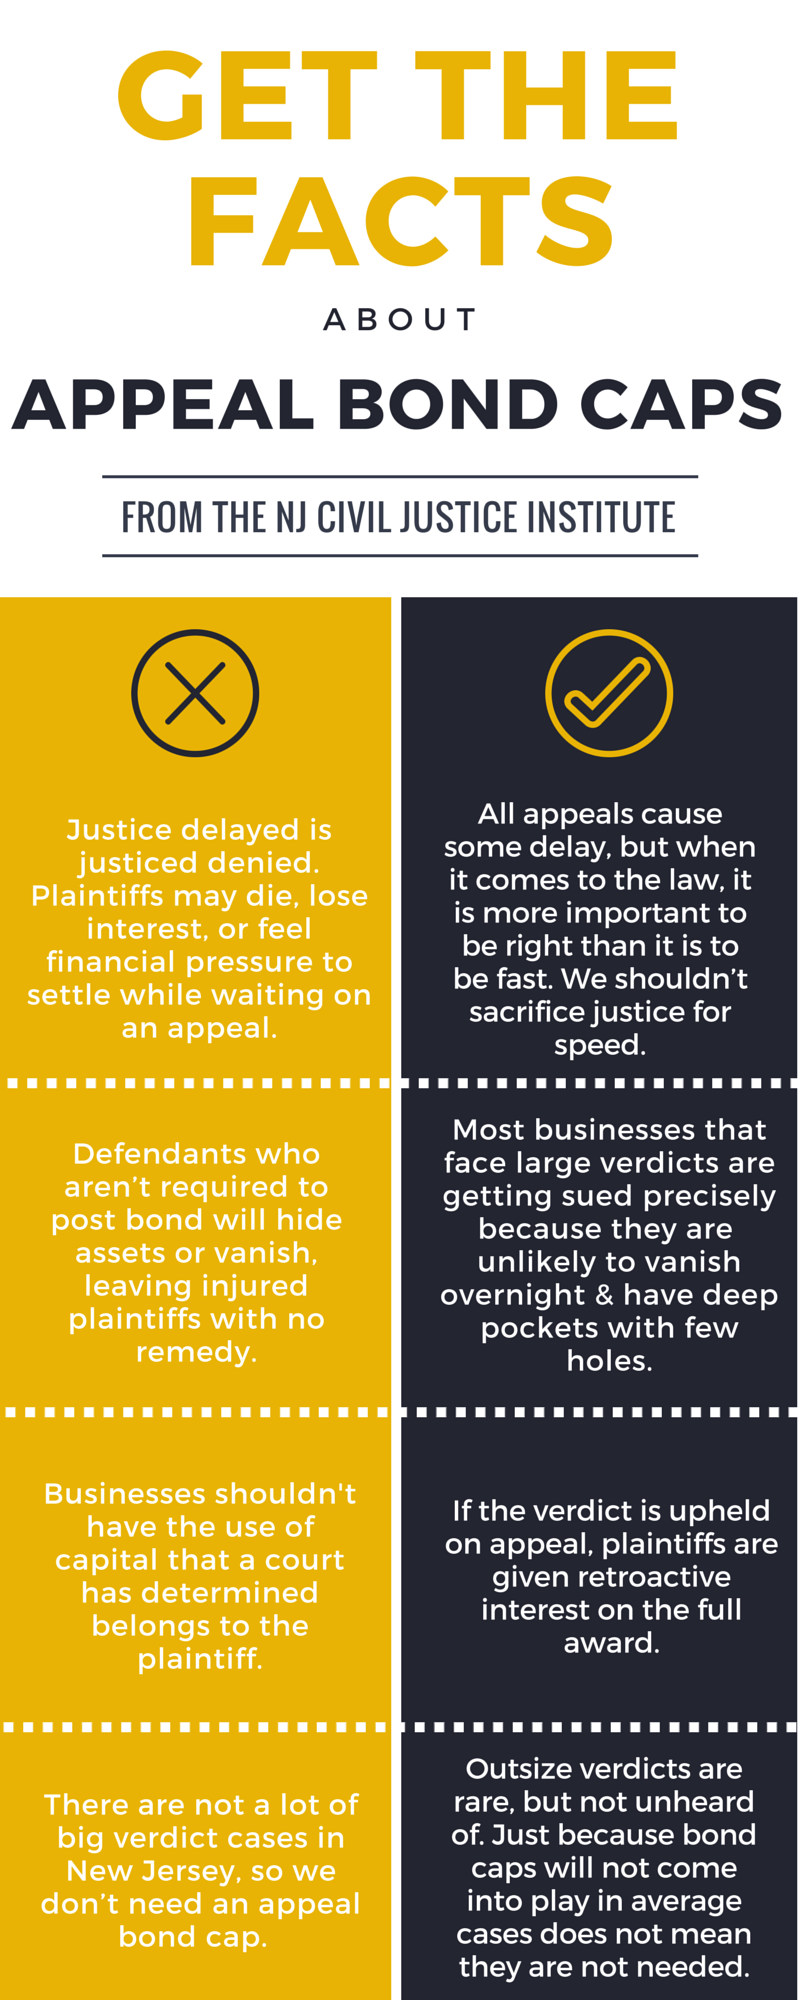 An infographic on appeal bond caps.